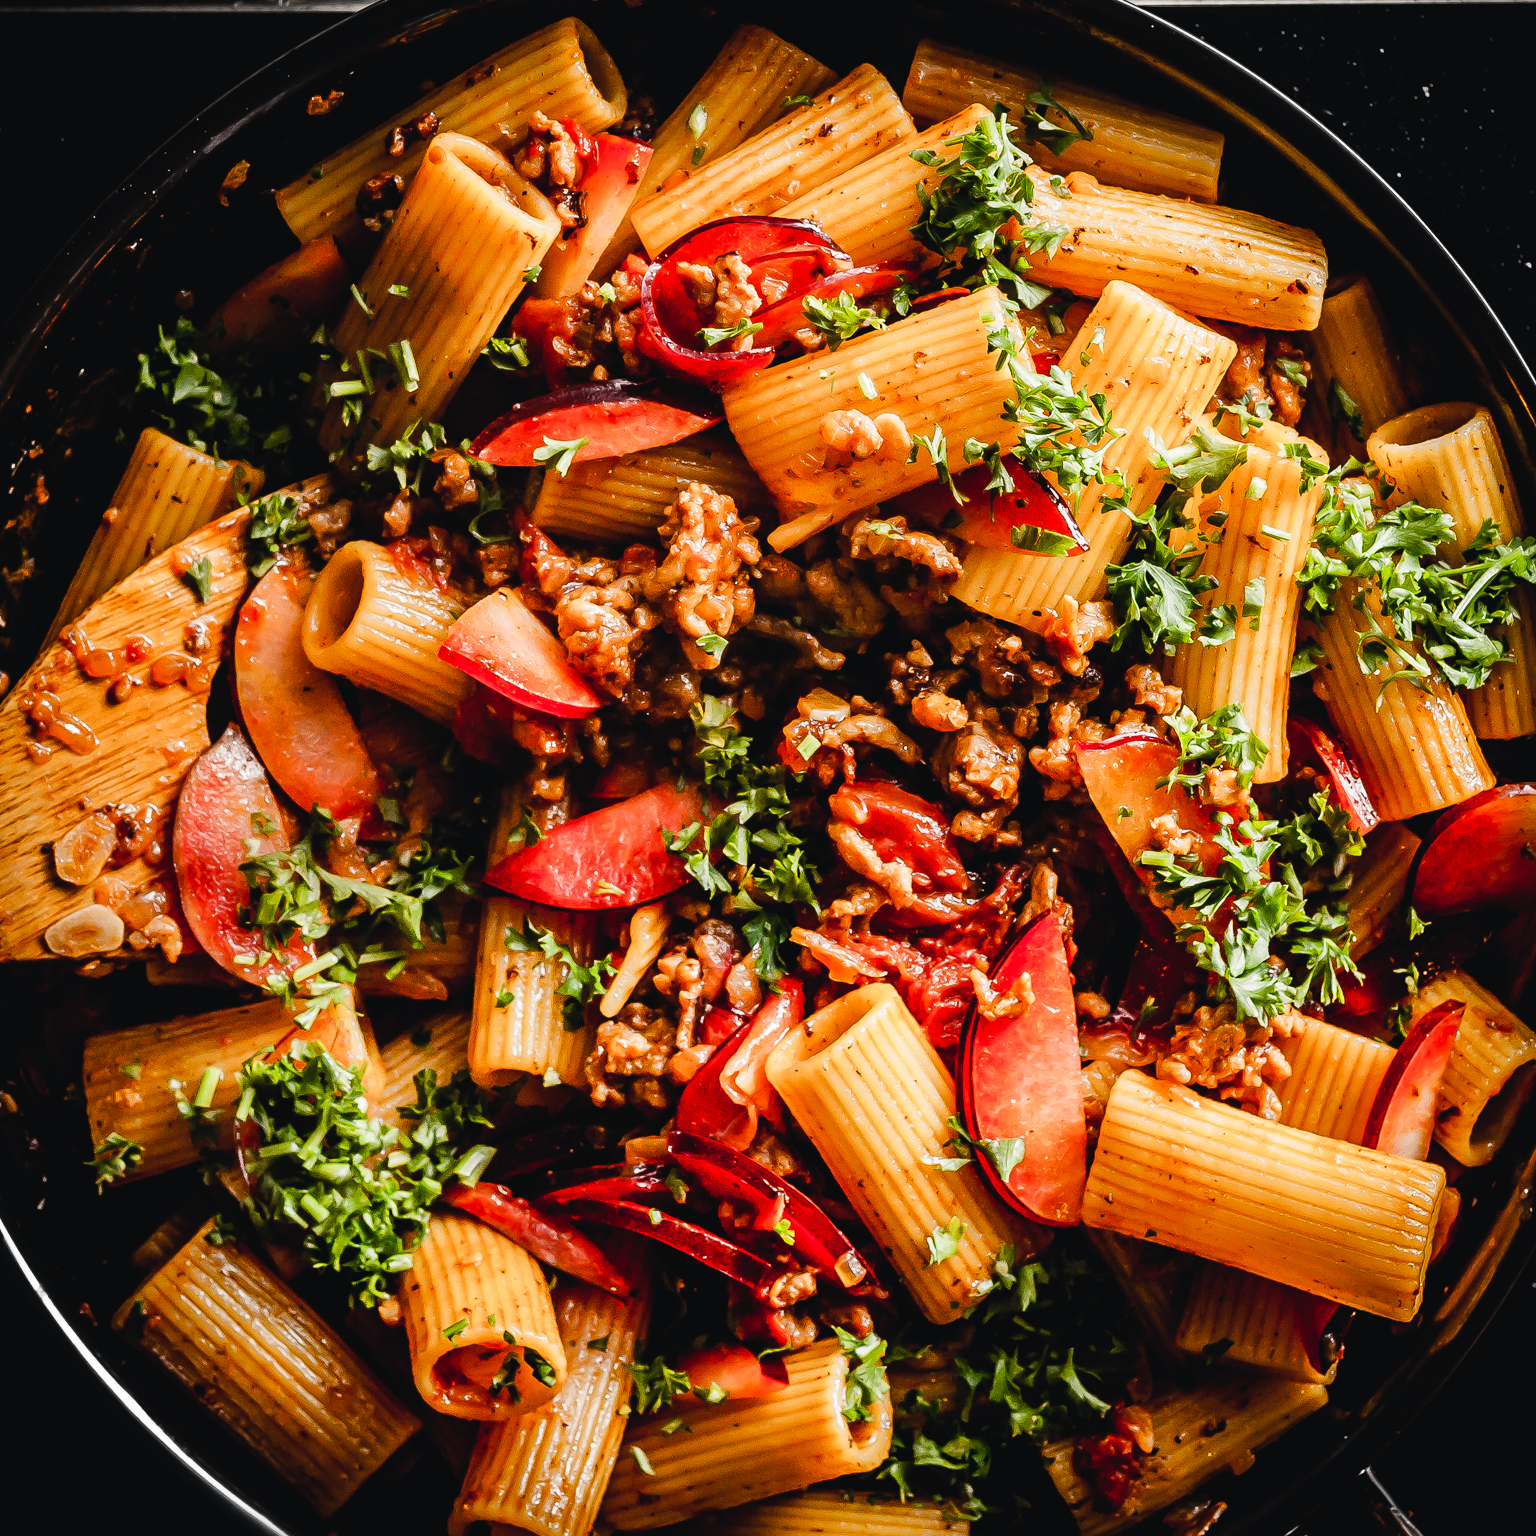 rigatoni with pork sausage and plums @ thatothercookingblog.com